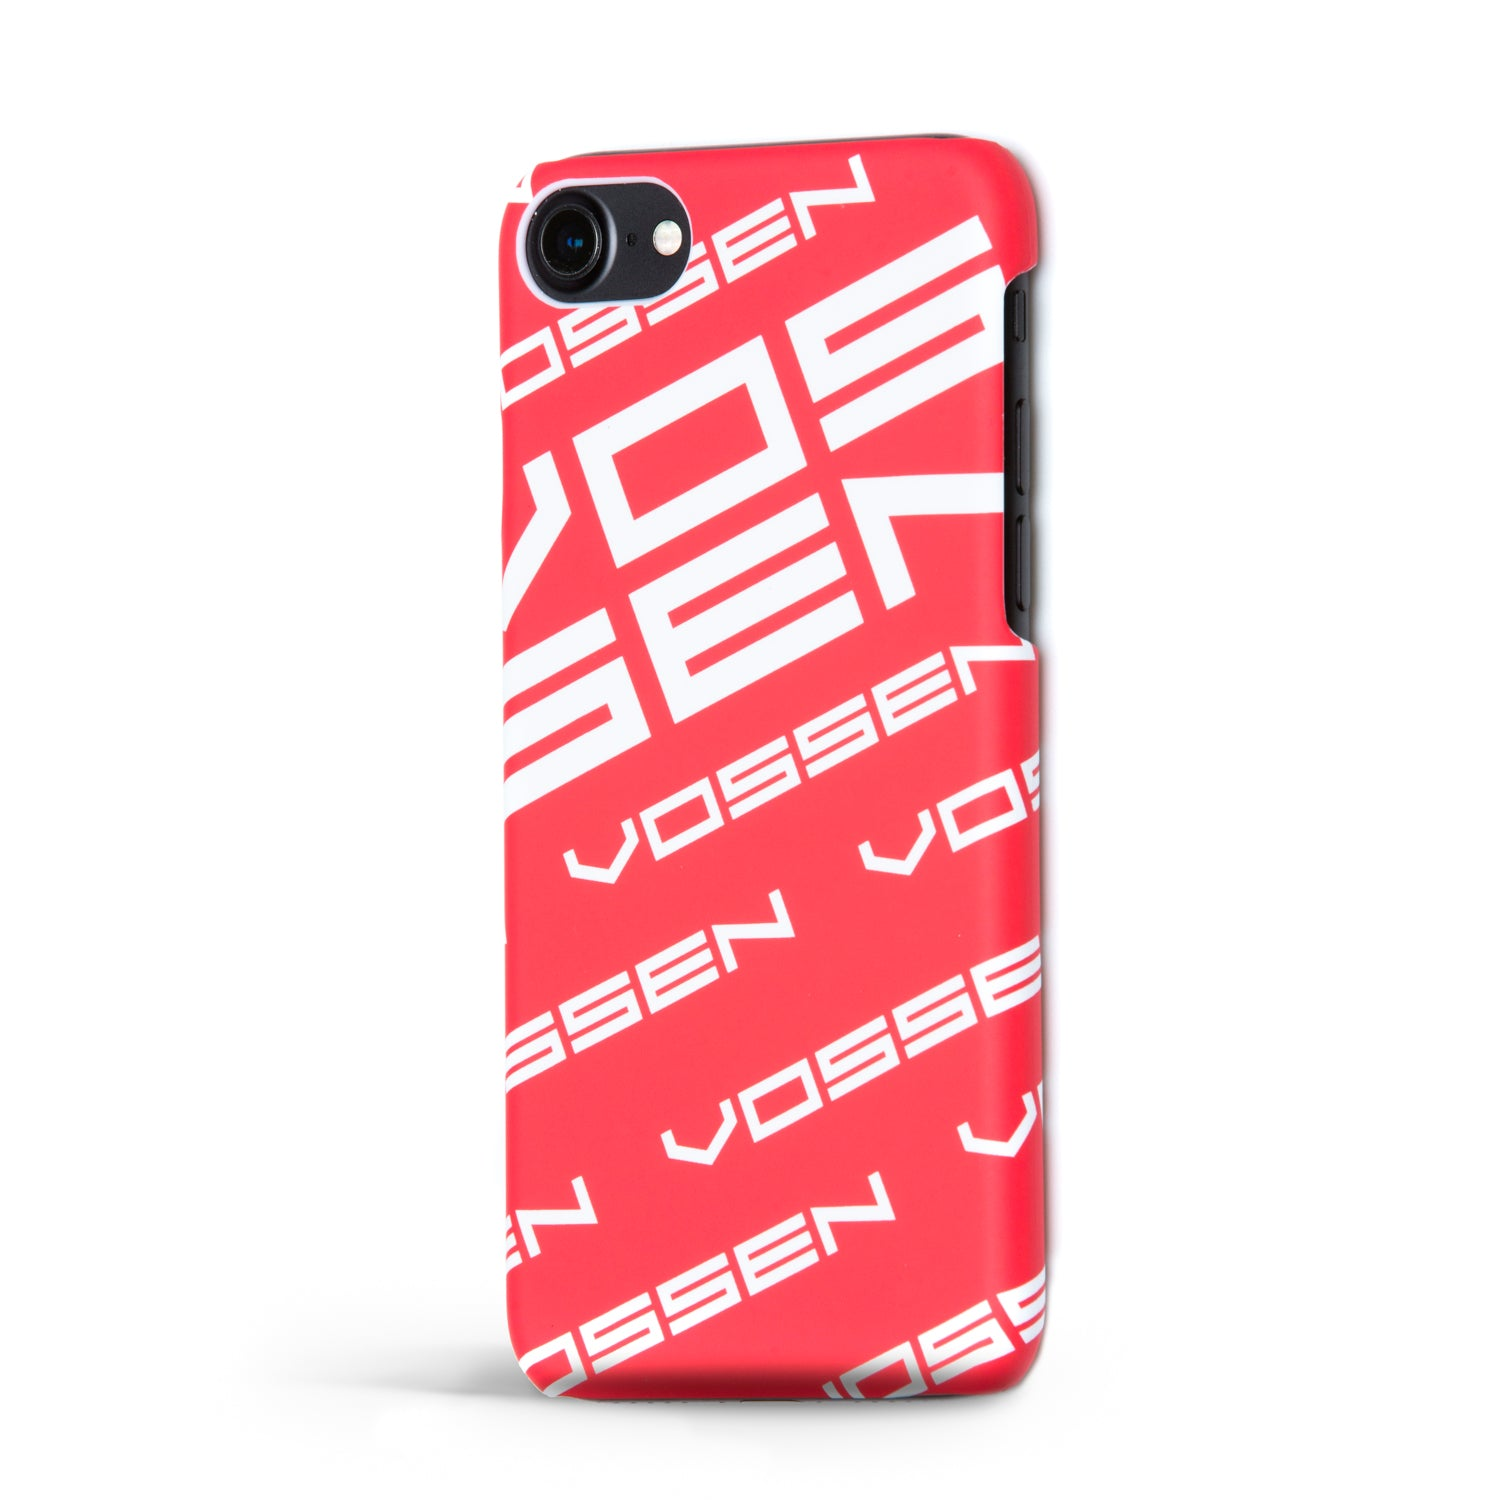 Vossen Repeat Phone Case <br>(iPhone 7/8/7 Plus/8 Plus/X/ Samsung S8)